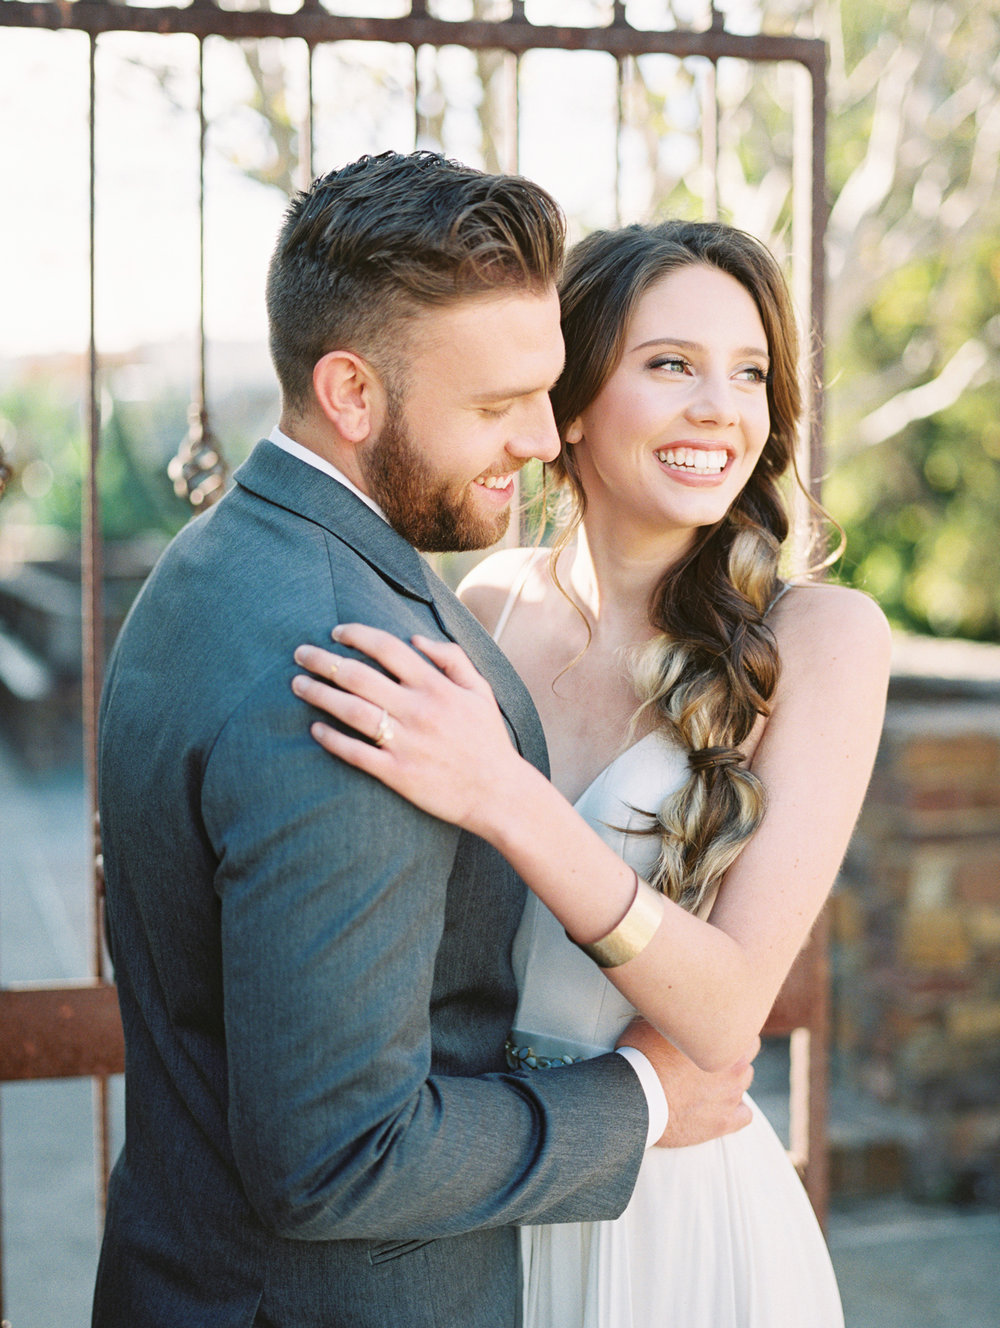 Amy-Golding-Wedding-Photography-SpringMarch2018(52of113).jpg